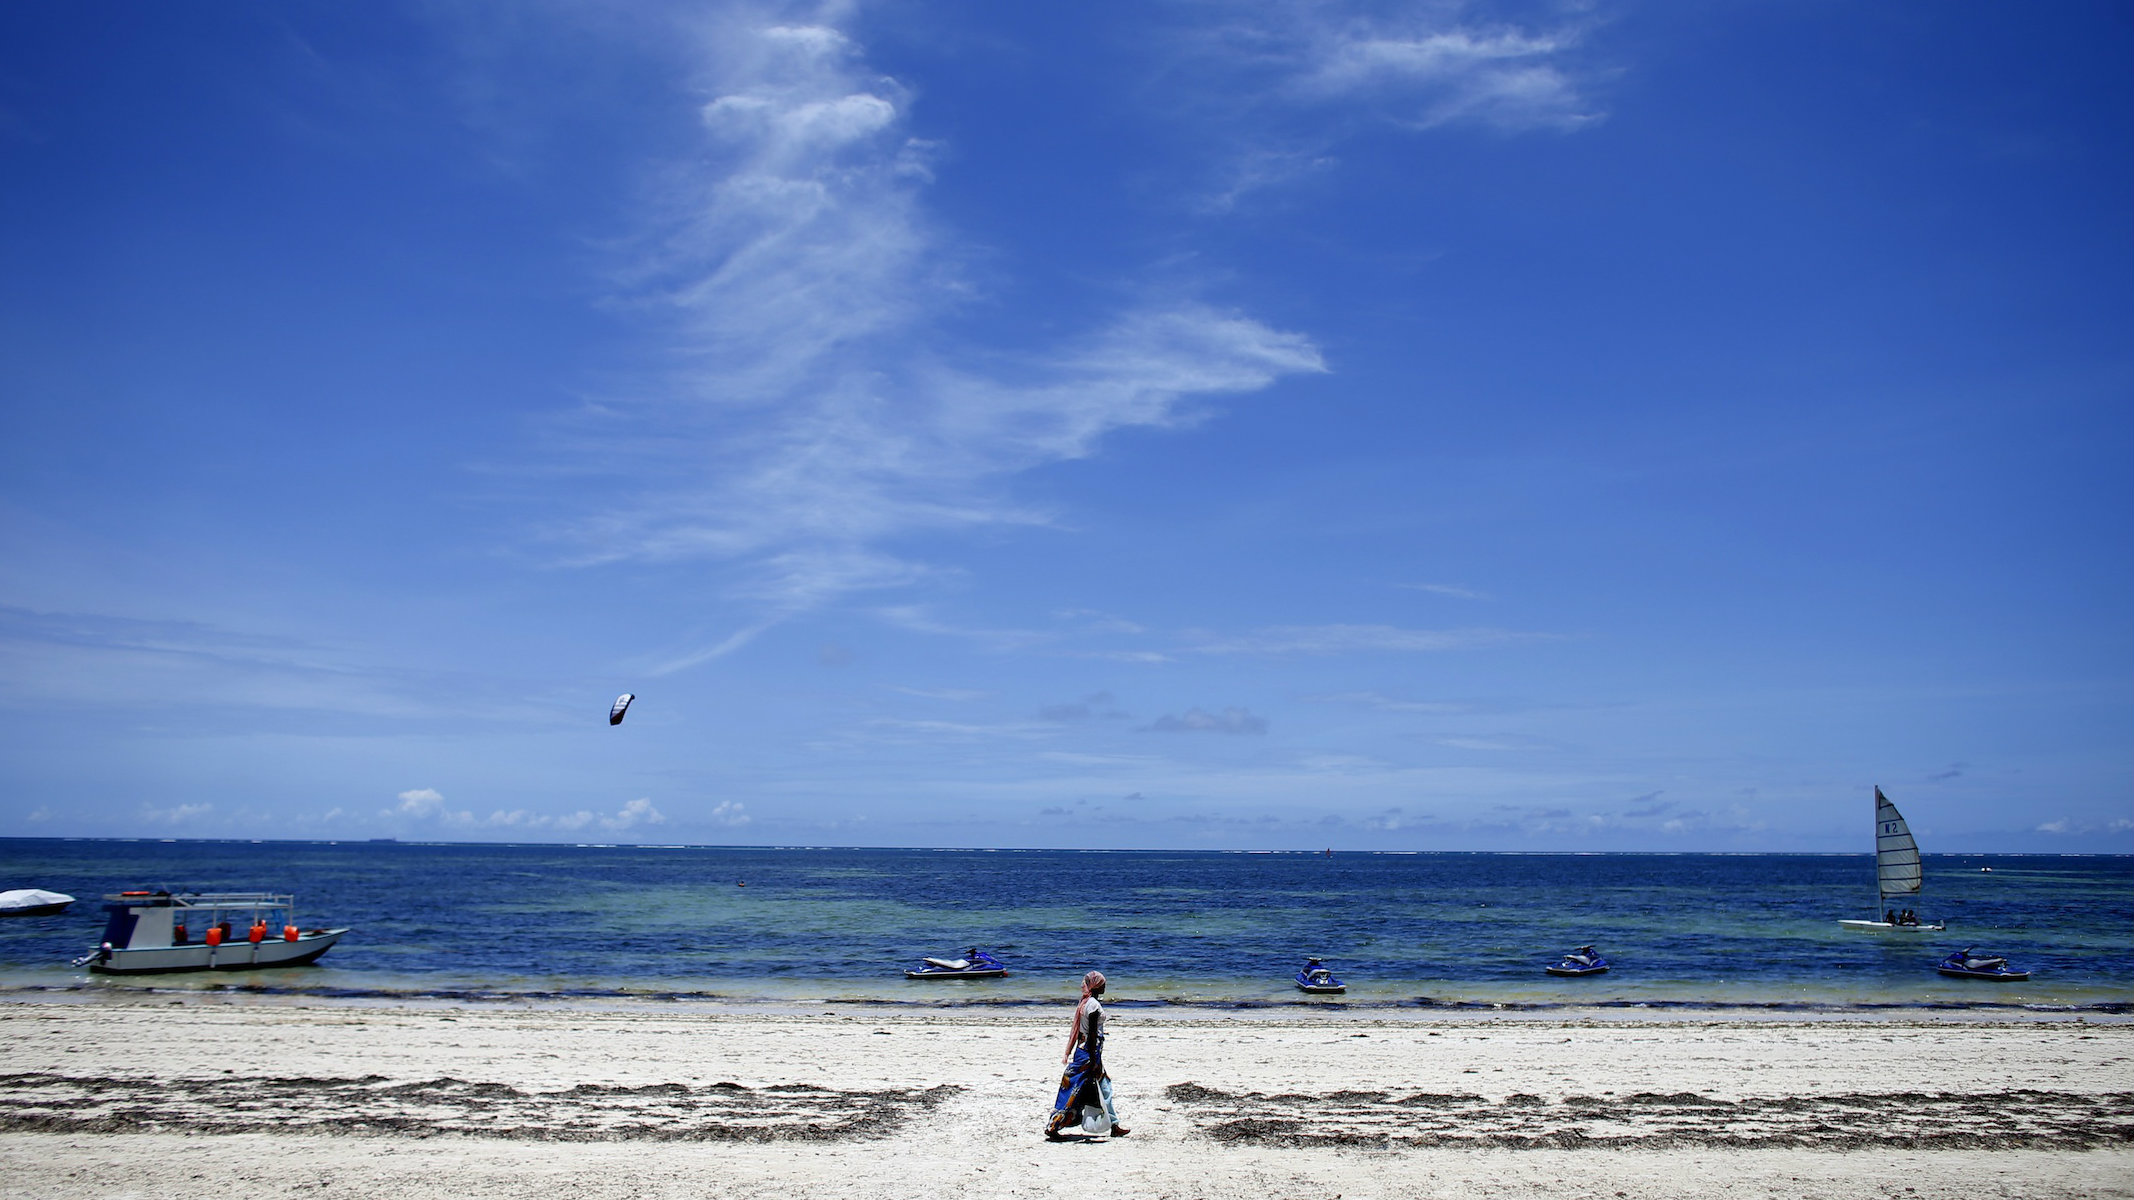 Kenya's middle class could help rejuvenate the country's ailing tourism sector.